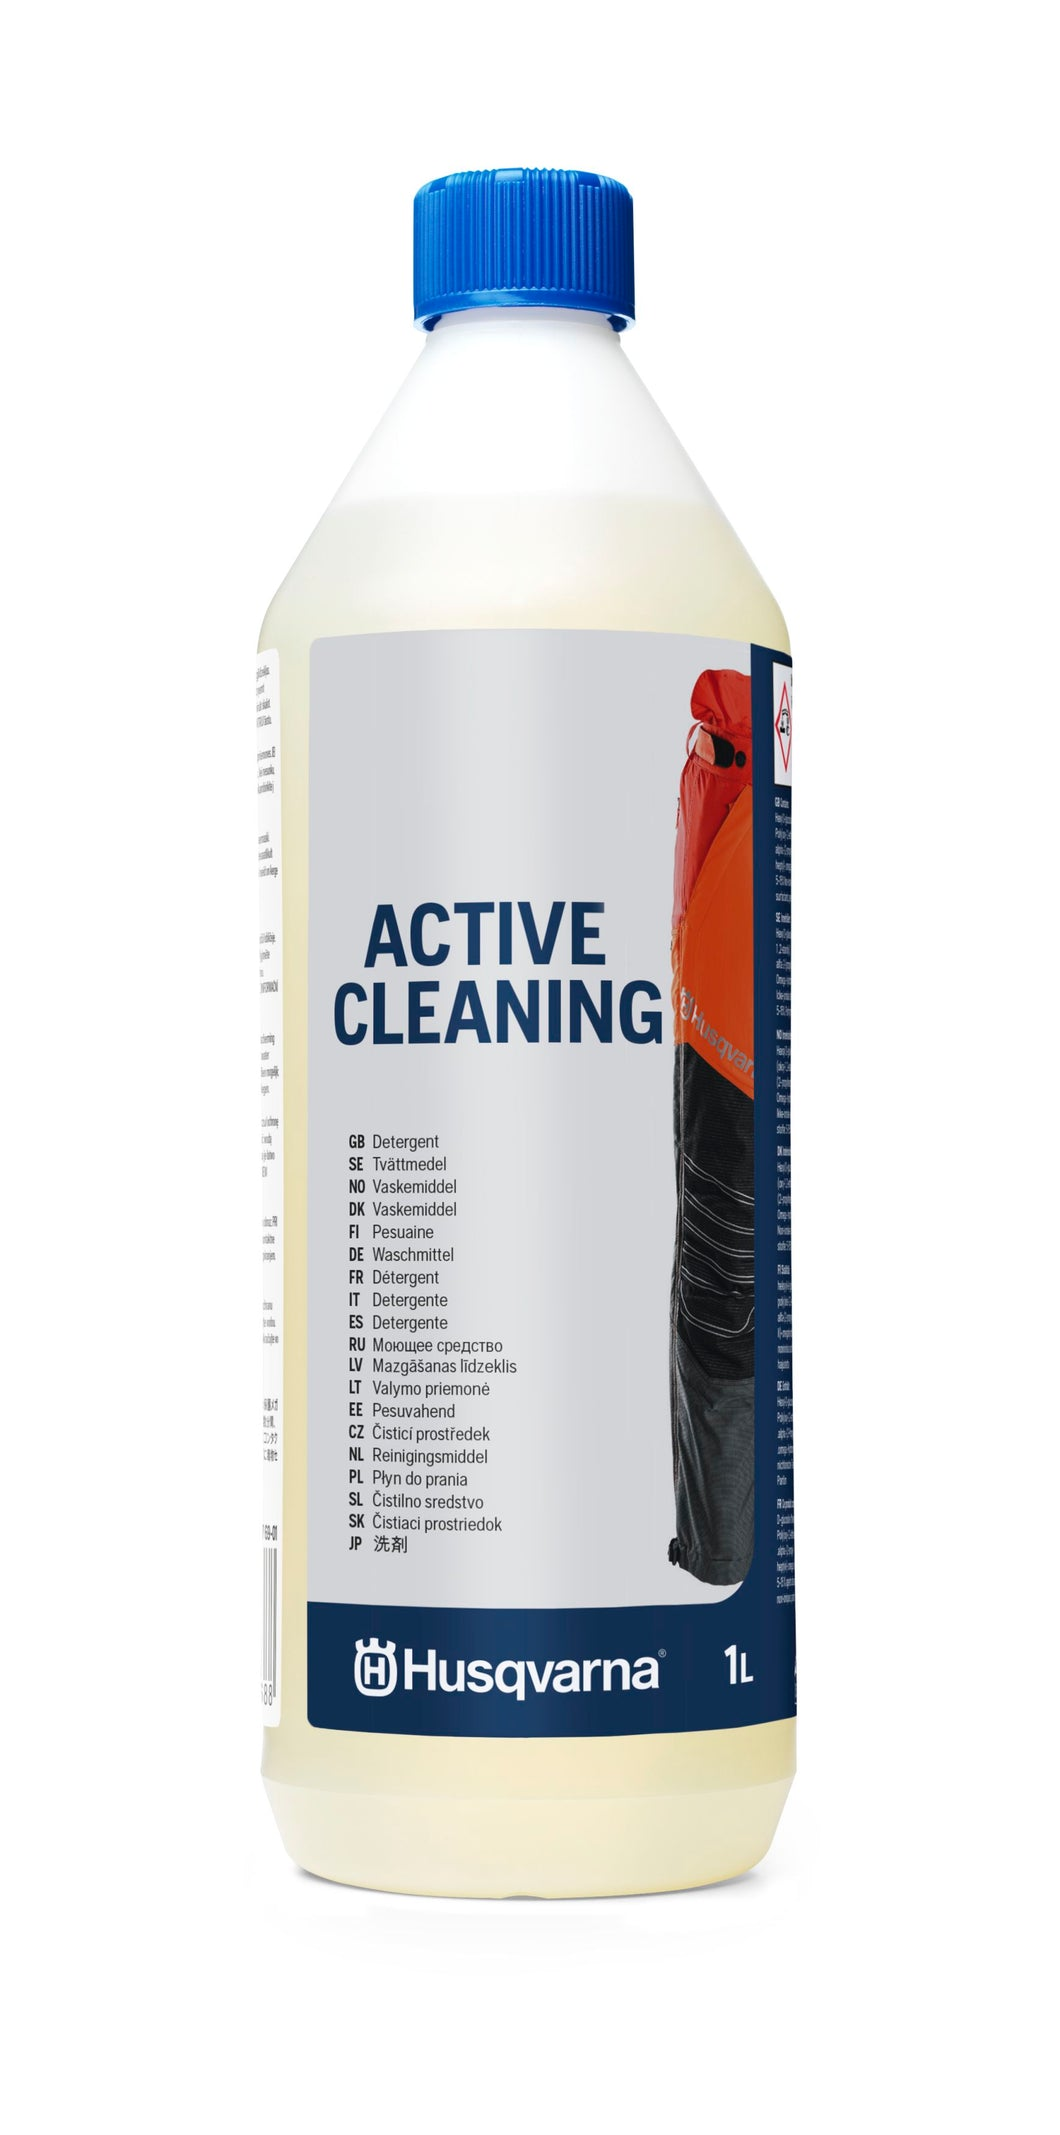 Husqvarna Active Cleaning Detergent